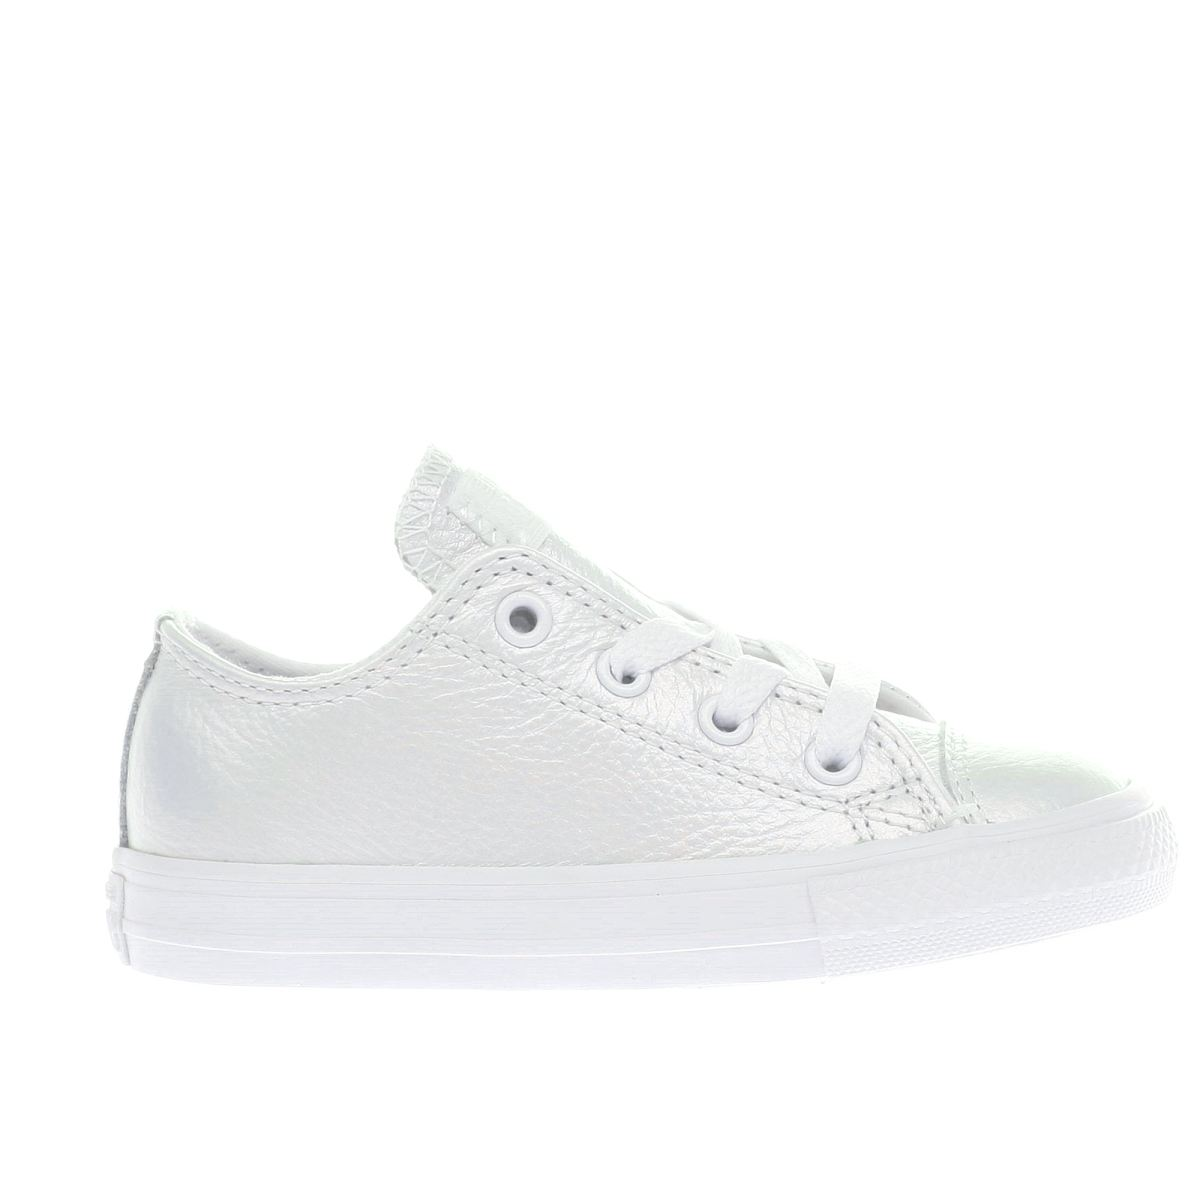 converse white all star lo Girls Toddler Trainers